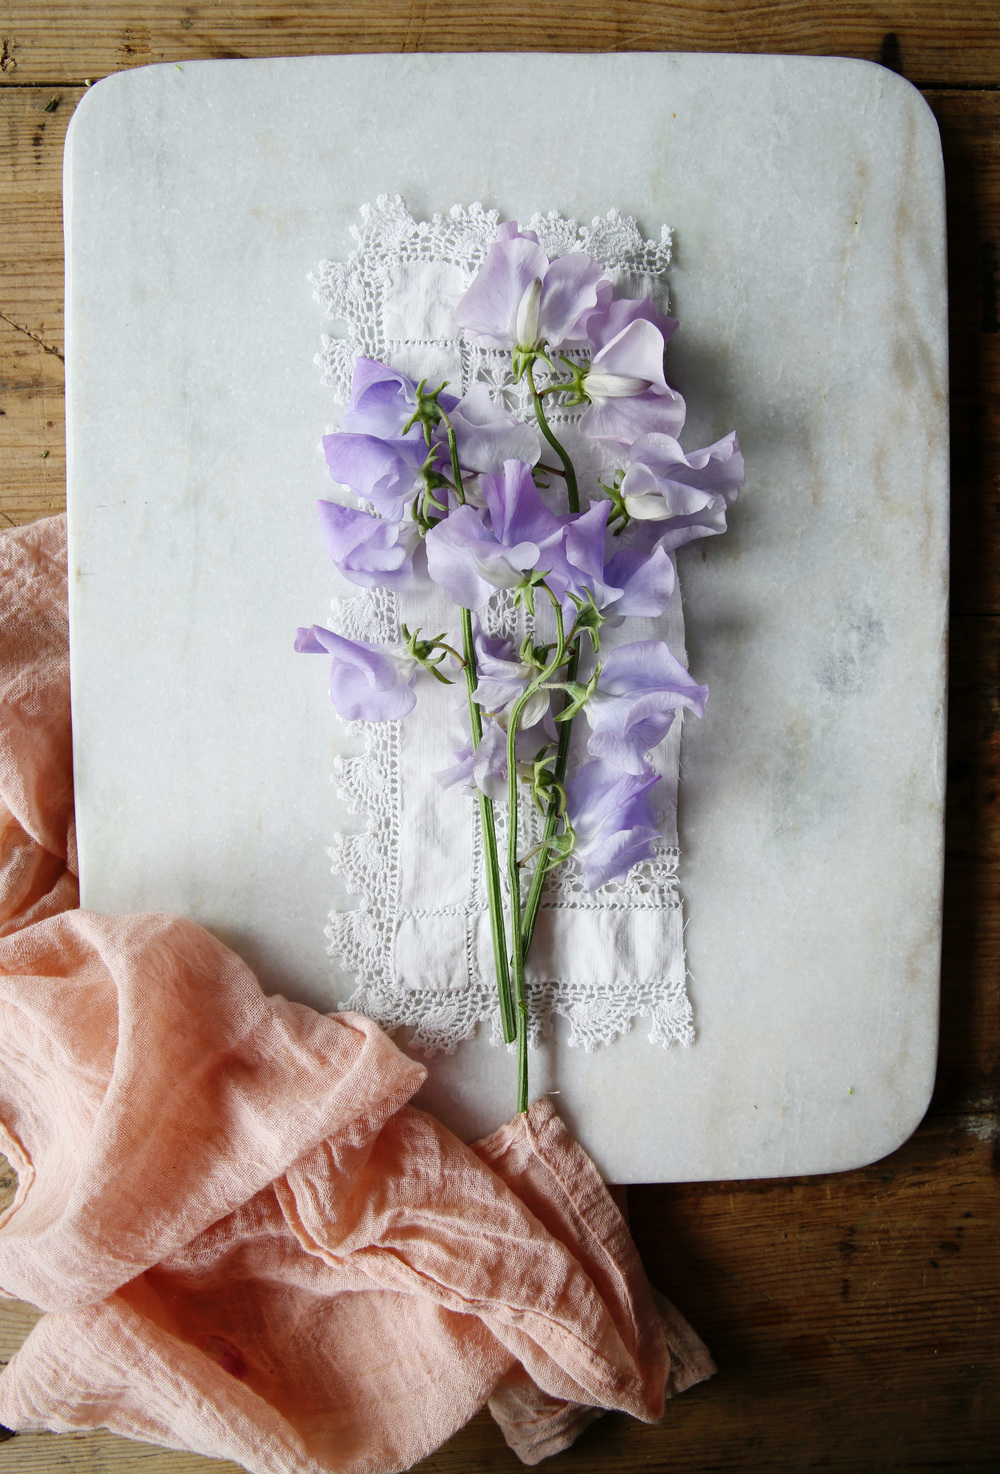 100 images from one bouquet : Inspiration from Makelight